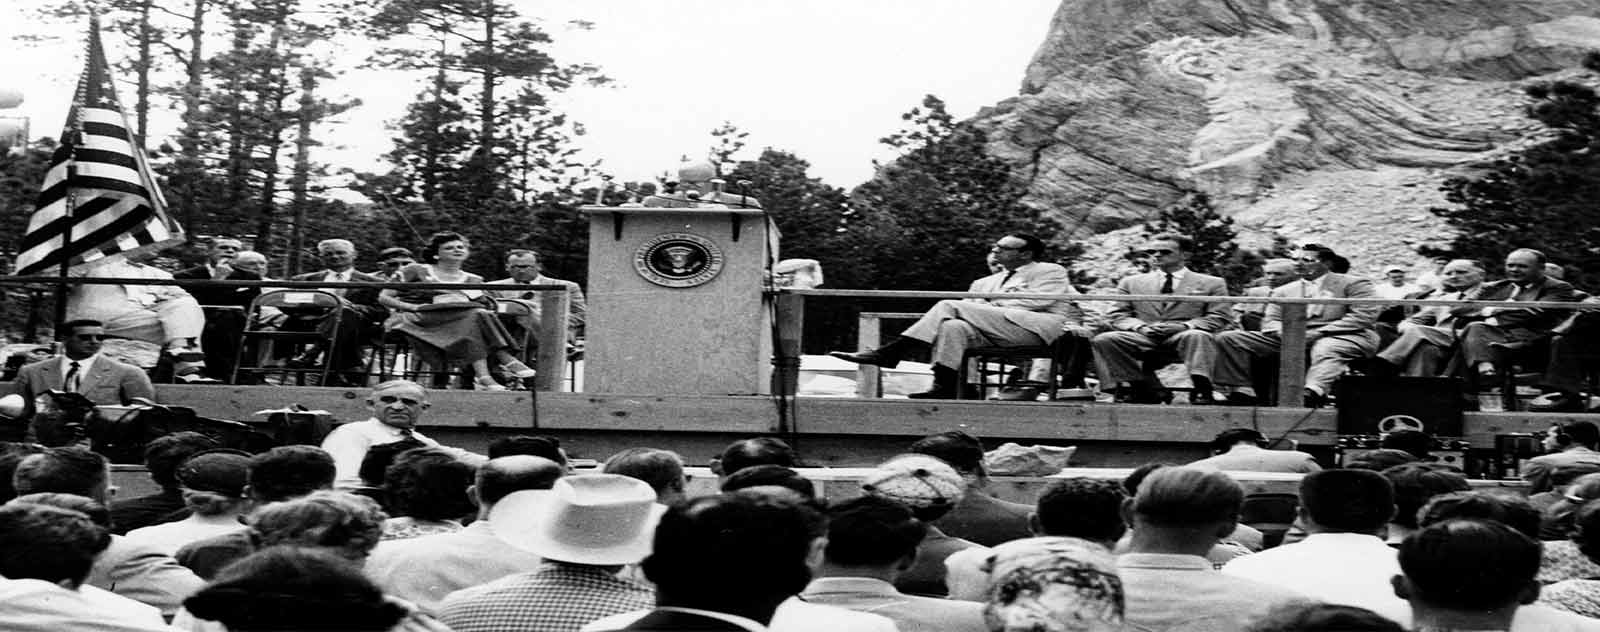 discours president coolidge mont rushmore